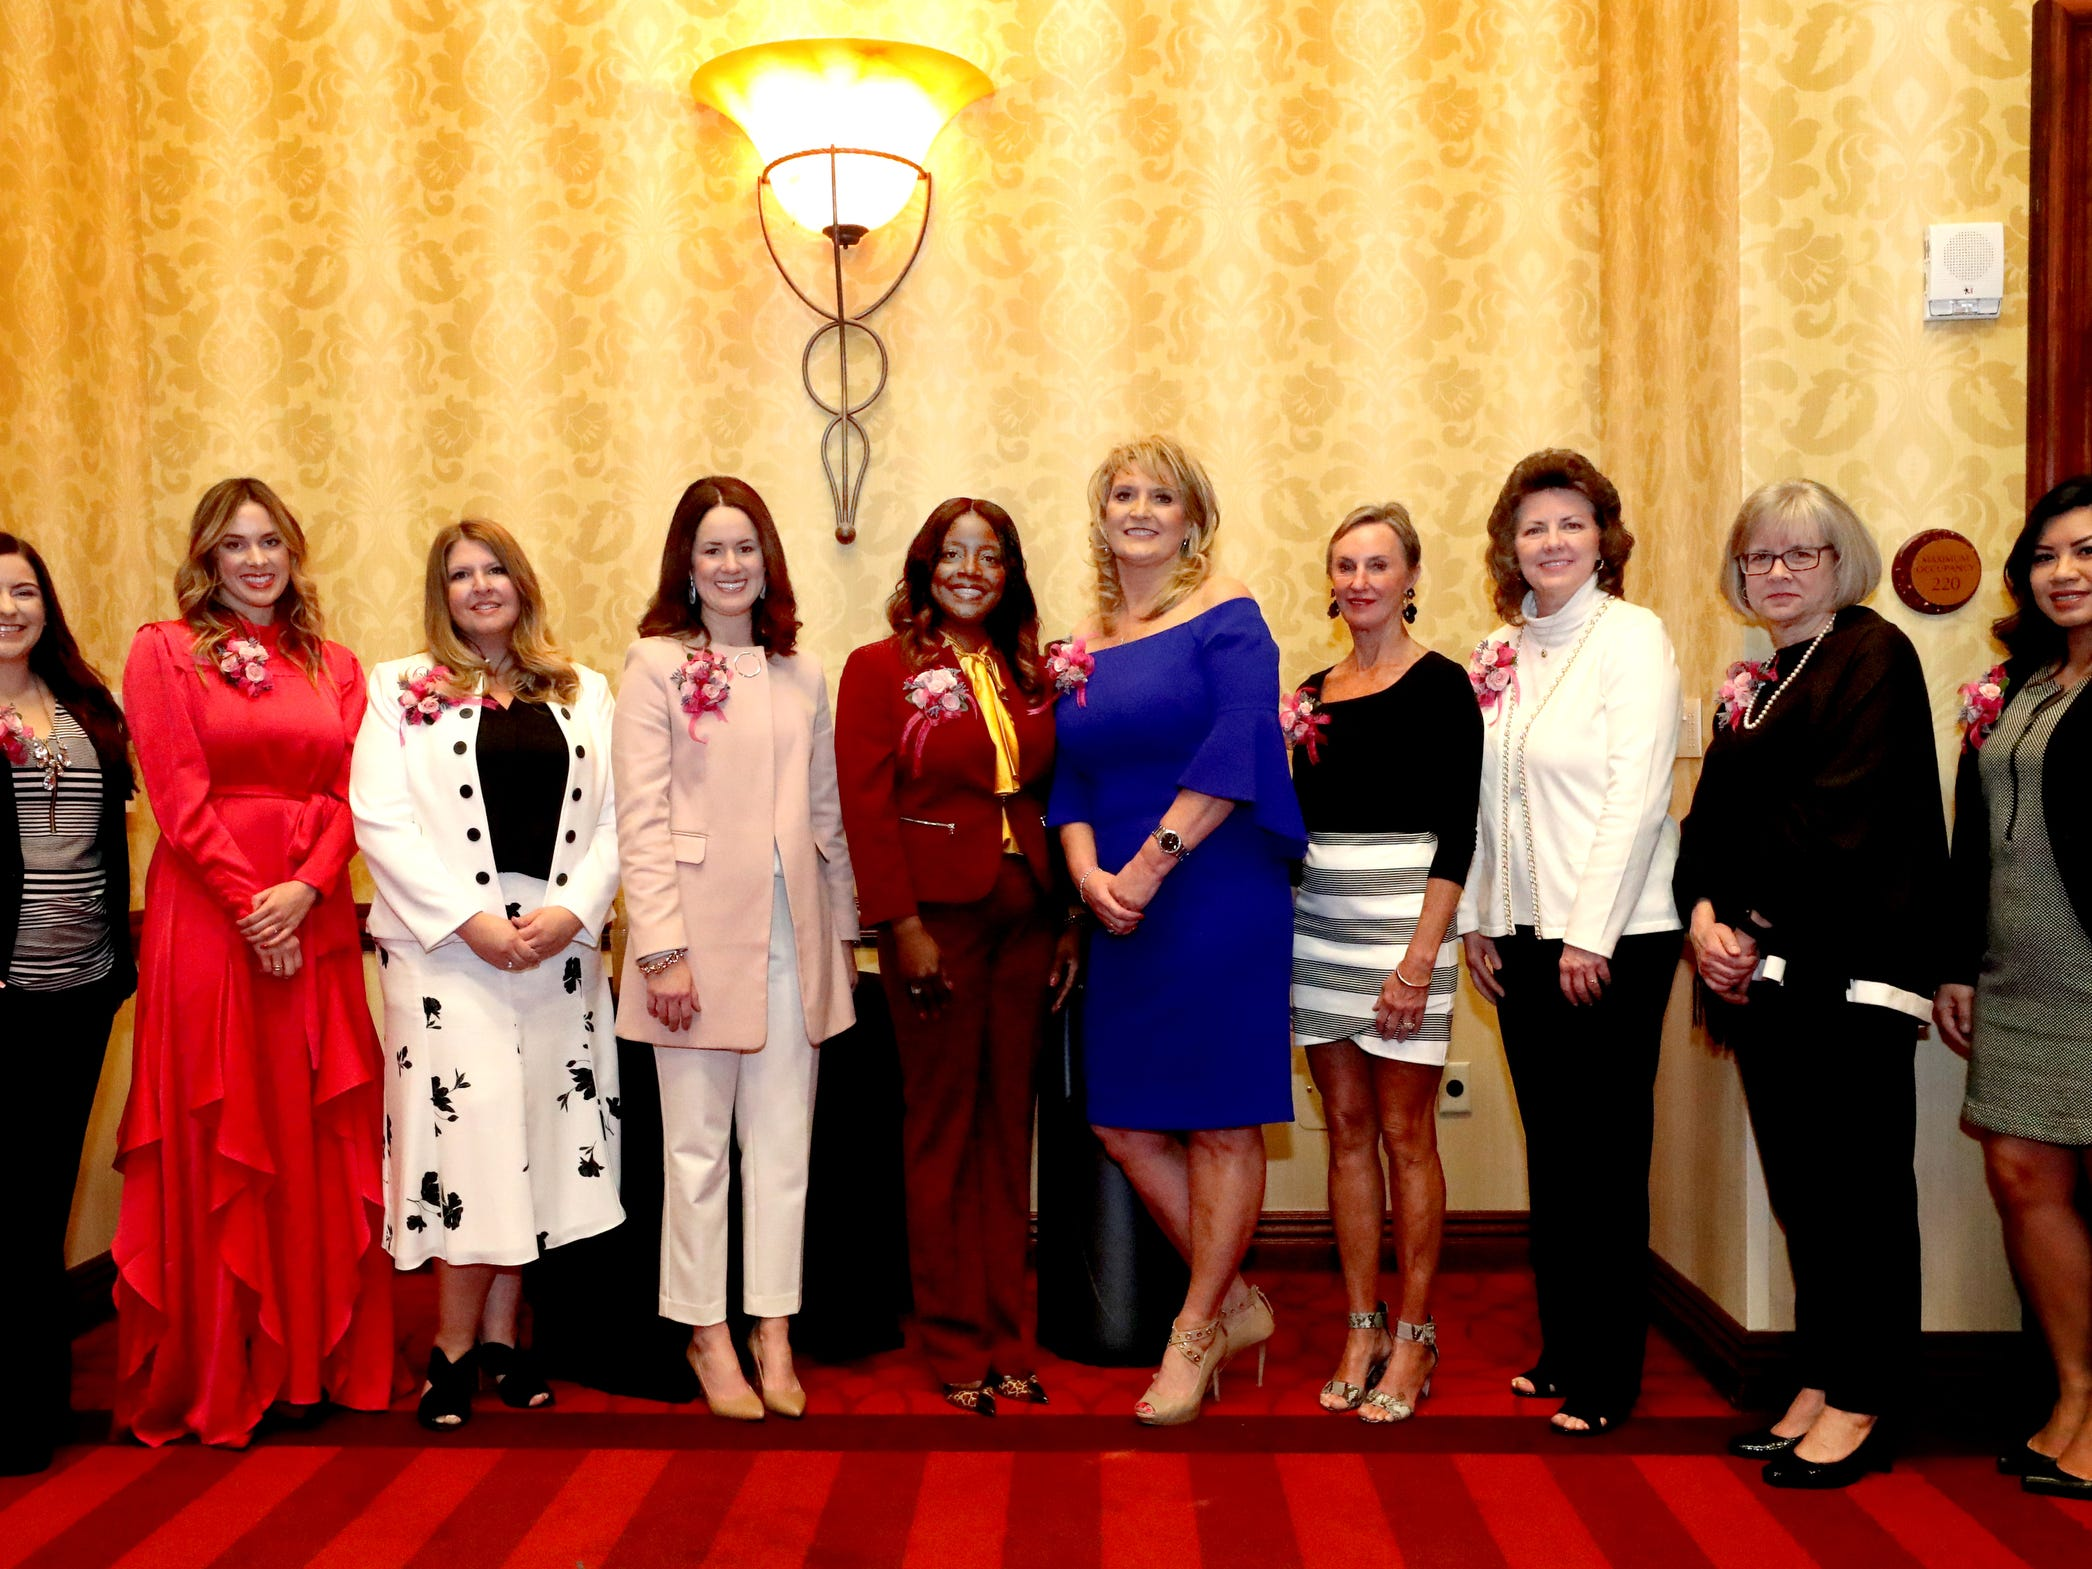 Ten women were recognized by Murfreesboro Magazine during the 2019 Women in Business Luncheon on Tuesday, March 12, 2019, at the Embassy Suites Murfreesboro. (L to R) Rebecca Goodwin, Co-owner and Office Manager of Goodwin Plumbing, Elizabeth Allen, owner of e.Allen boutiques, Ladawna Parham, Executive Director at Nourish Food Bank, Megan Bynum, certified Financial Planner, Novonda Lilly, Director of Talent Temp/Force and Executive Search at Vanderbilt University Medical Center, Sheri Morgan, owner of Tri Star Title and Escrow, Dr. Elizabeth Laroche, M.D. at Mid-TN-GYN and Owner of Body and Face, Melissa Blair Wrigh, City Recorder, Treasure and Finance Director of the City of Murfreesboro, Debra Sells, Vice President for Student Affairs and Vice Provost for Enrollment Services at MTSU and Amy Jennings, owner of The Nail Room at Beehive Salon.